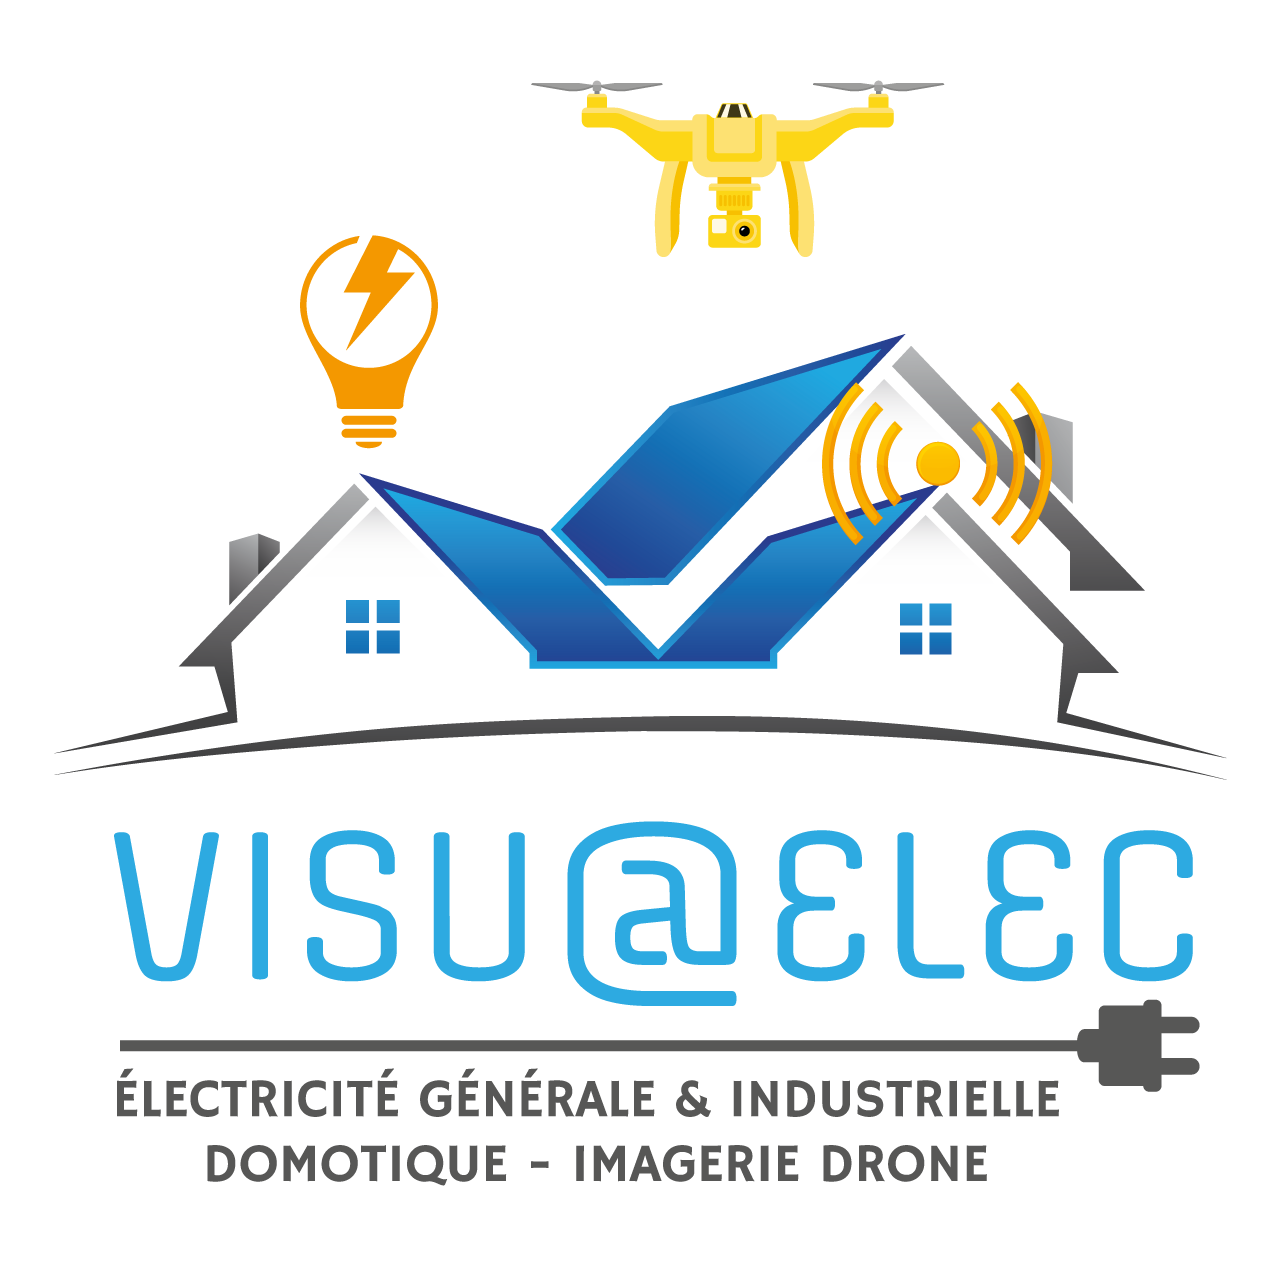 Visuaelec